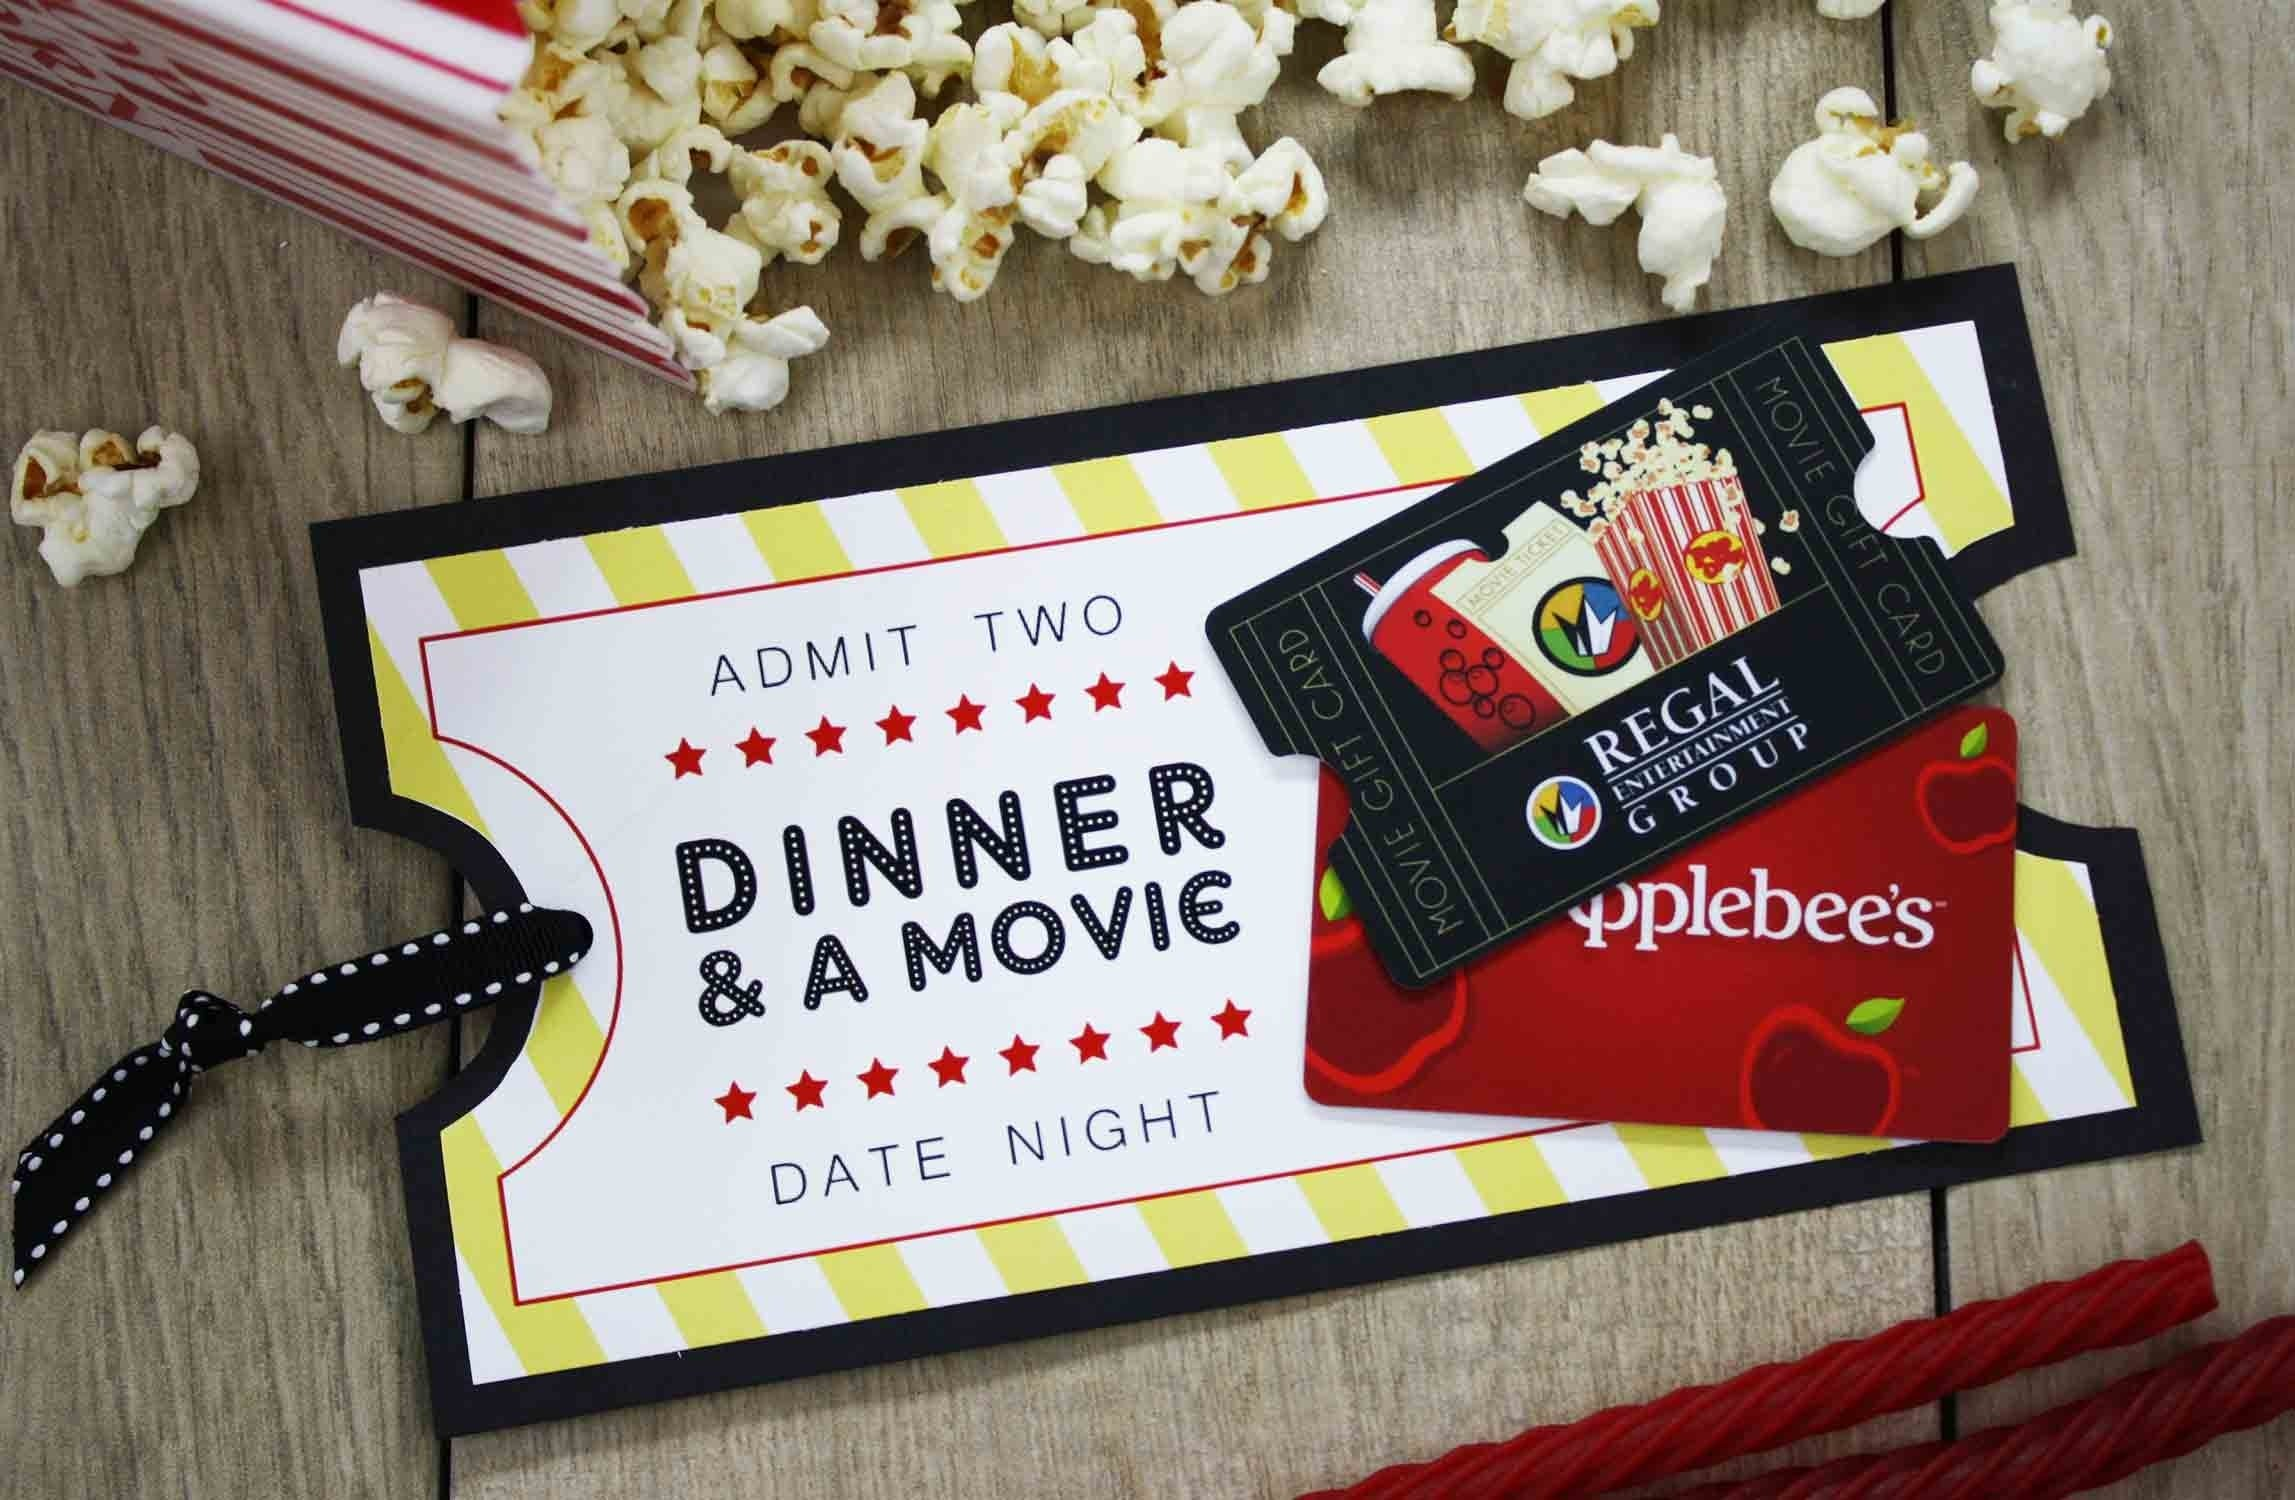 10 Stunning Ideas For Giving Gift Cards free printable give date night for a wedding gift gcg 1 2020